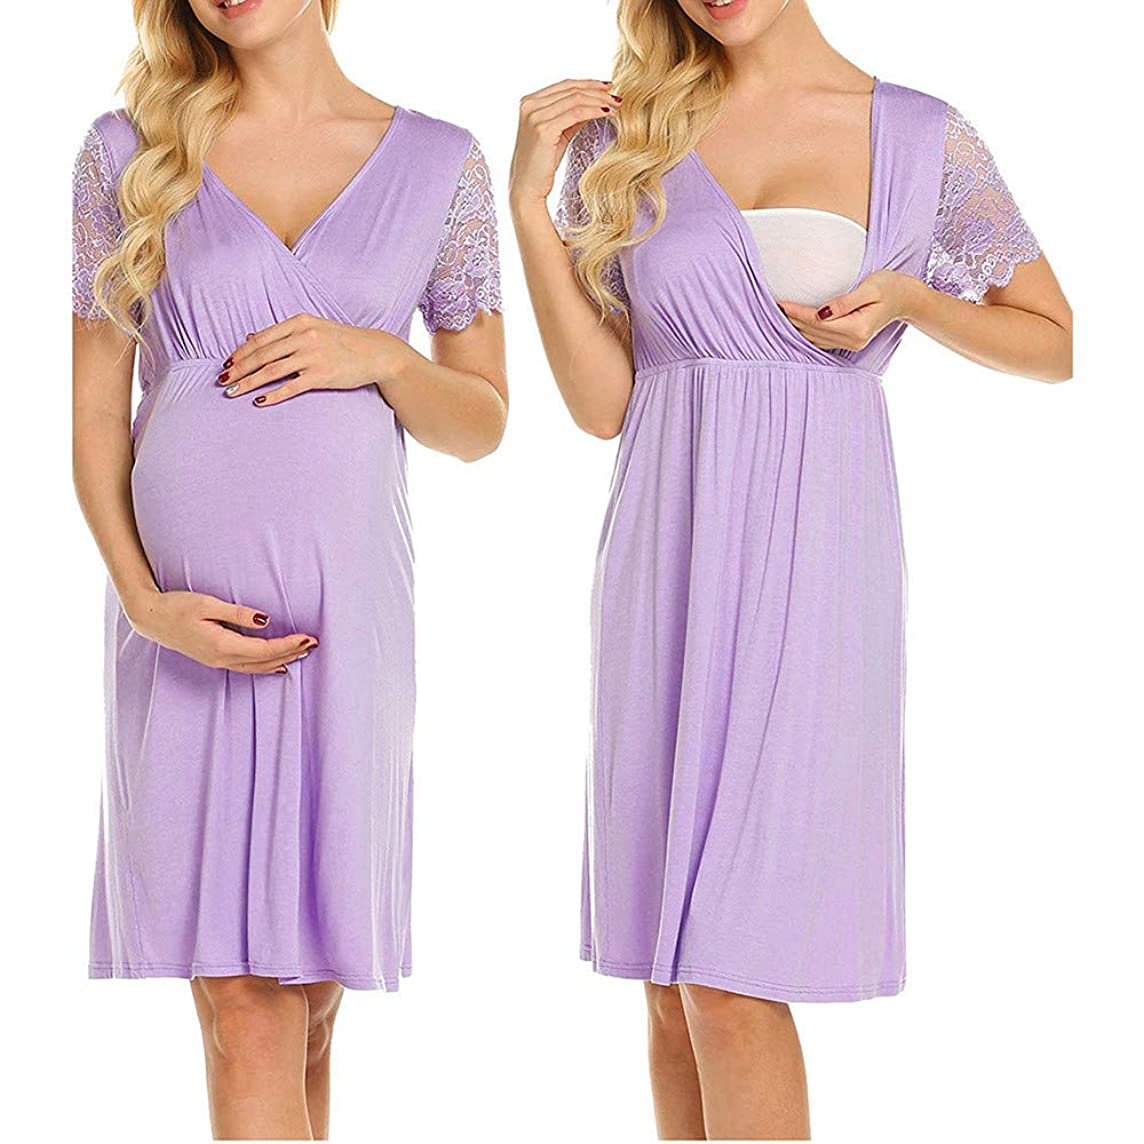 Sttech1 Womens Labor/delivery/Nursing Hospital Gown Maternity Lace Short Sleeve Sleep Dress